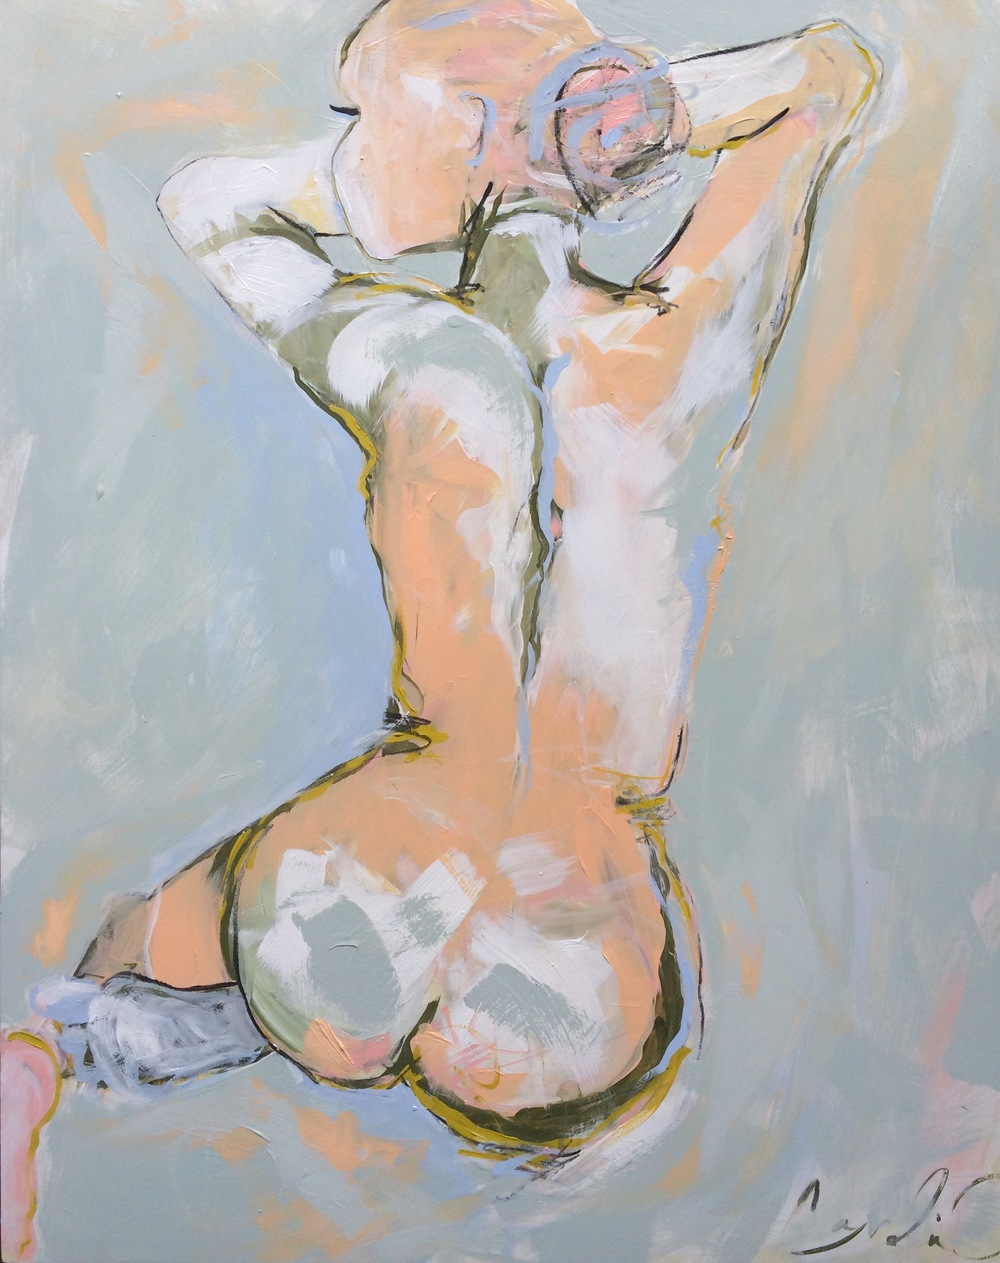 Apricot & Creame Seated Nude 24x30.jpg